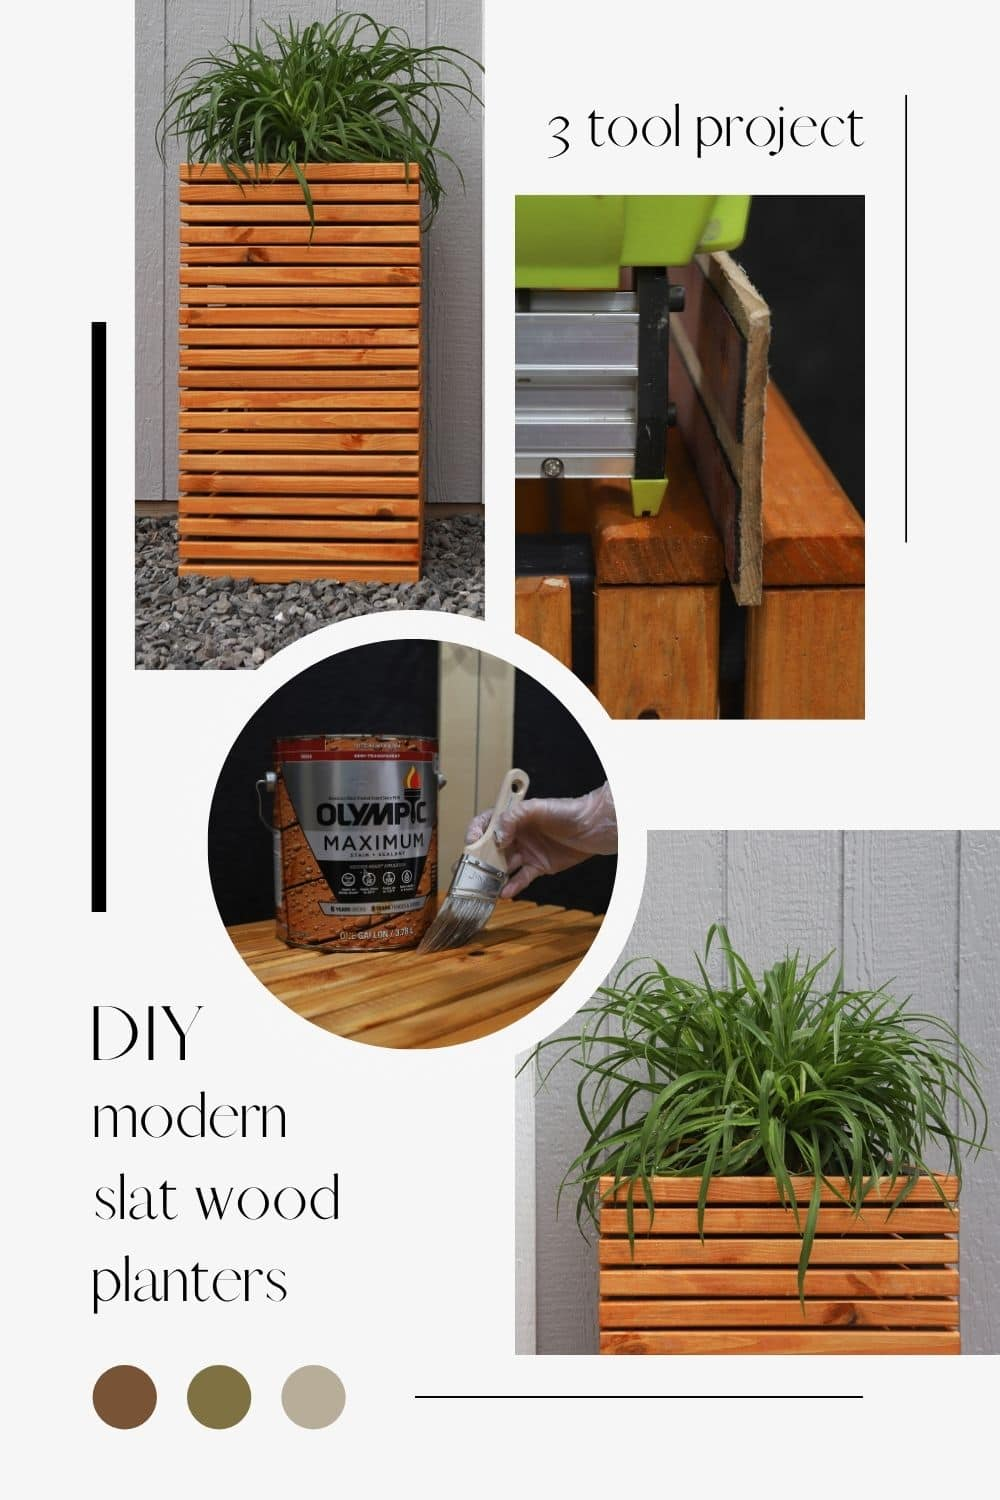 How To Make Modern Slat Wood Planters With 3 Tools